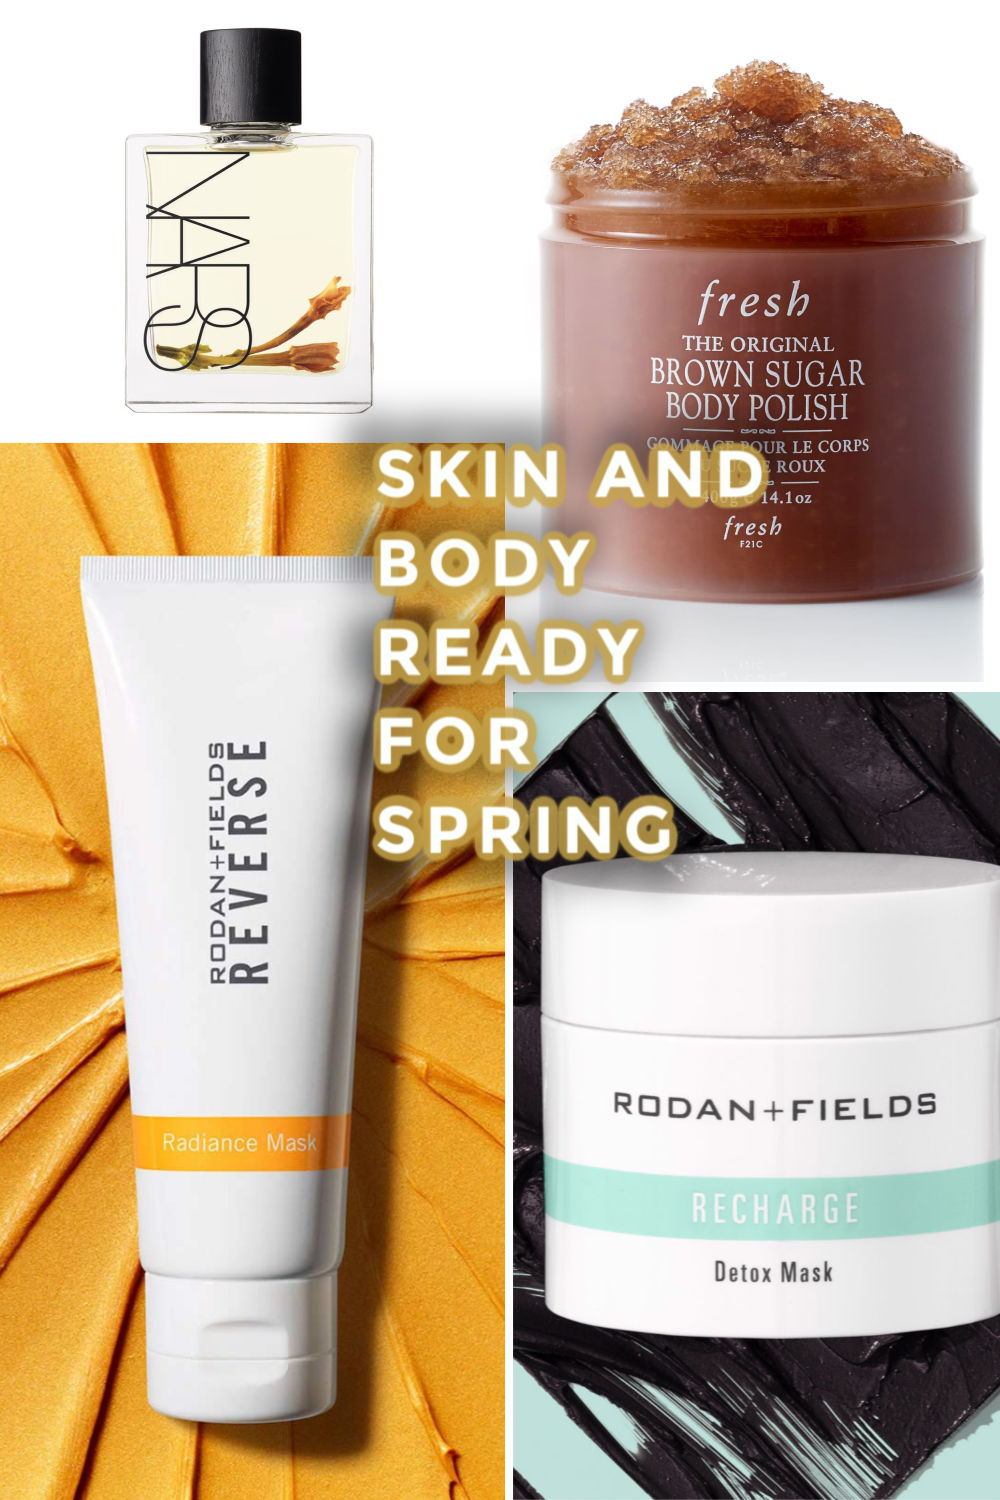 Skin and body ready for spring